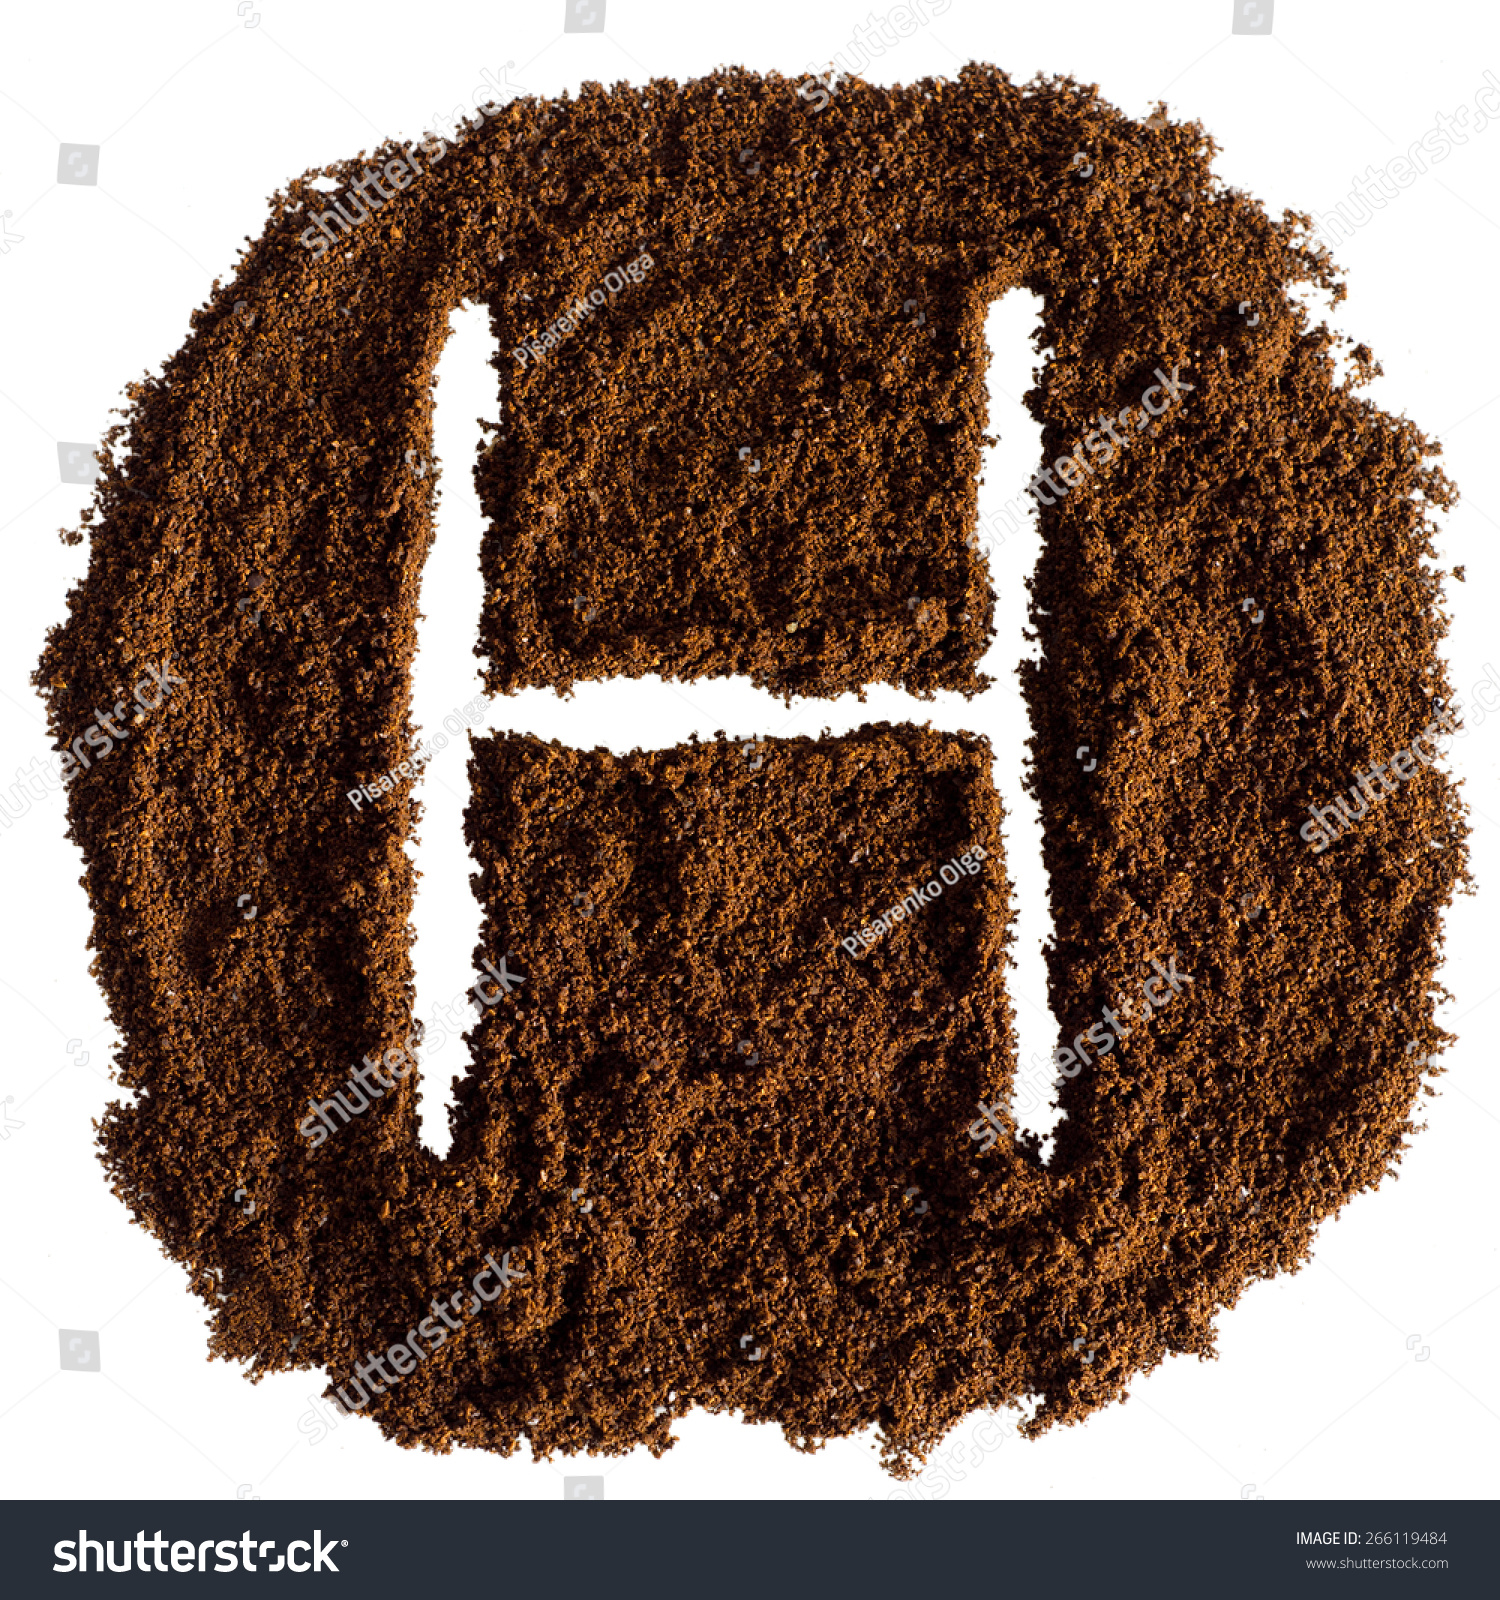 ground coffee stock photo - photo #26